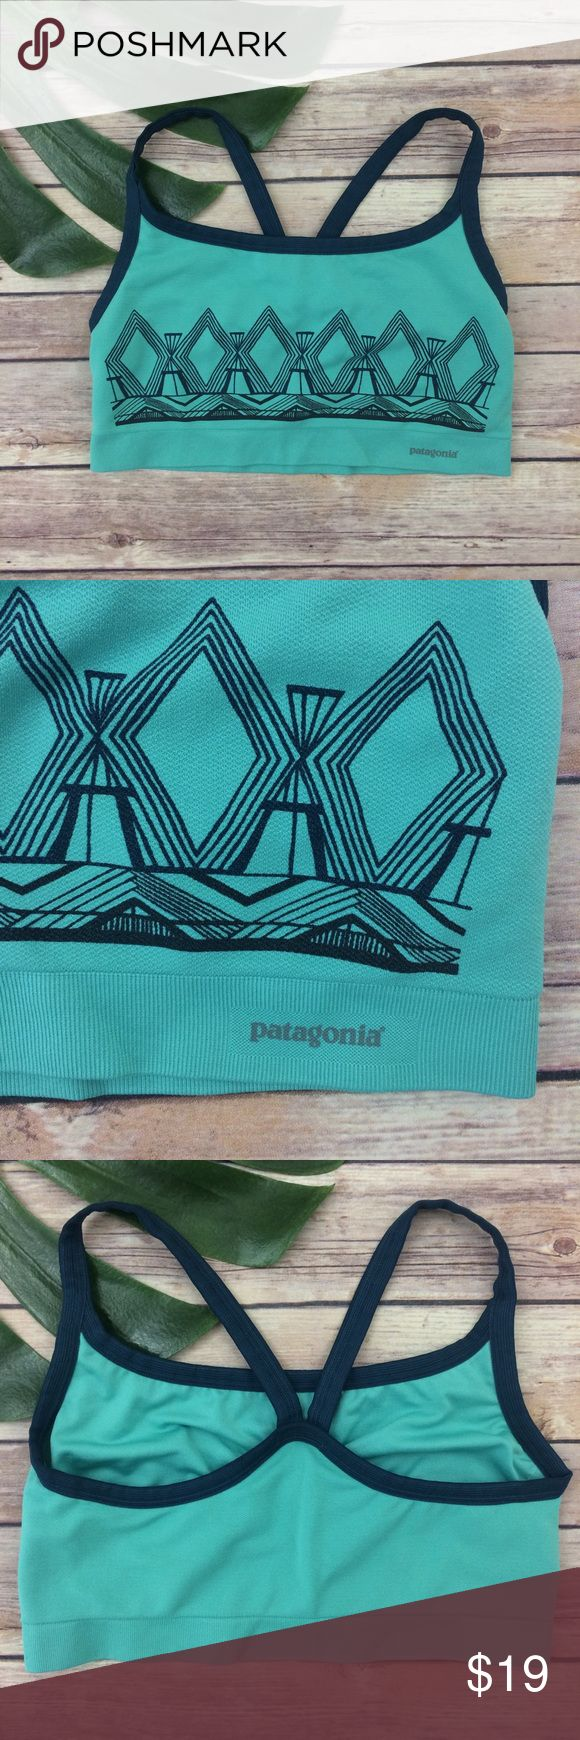 Patagonia teal green sports bra Patagonia teal sports bra, size M. It is free from any rips or stains. It measures about 24 inches around the band. Patagonia Intimates & Sleepwear Bras